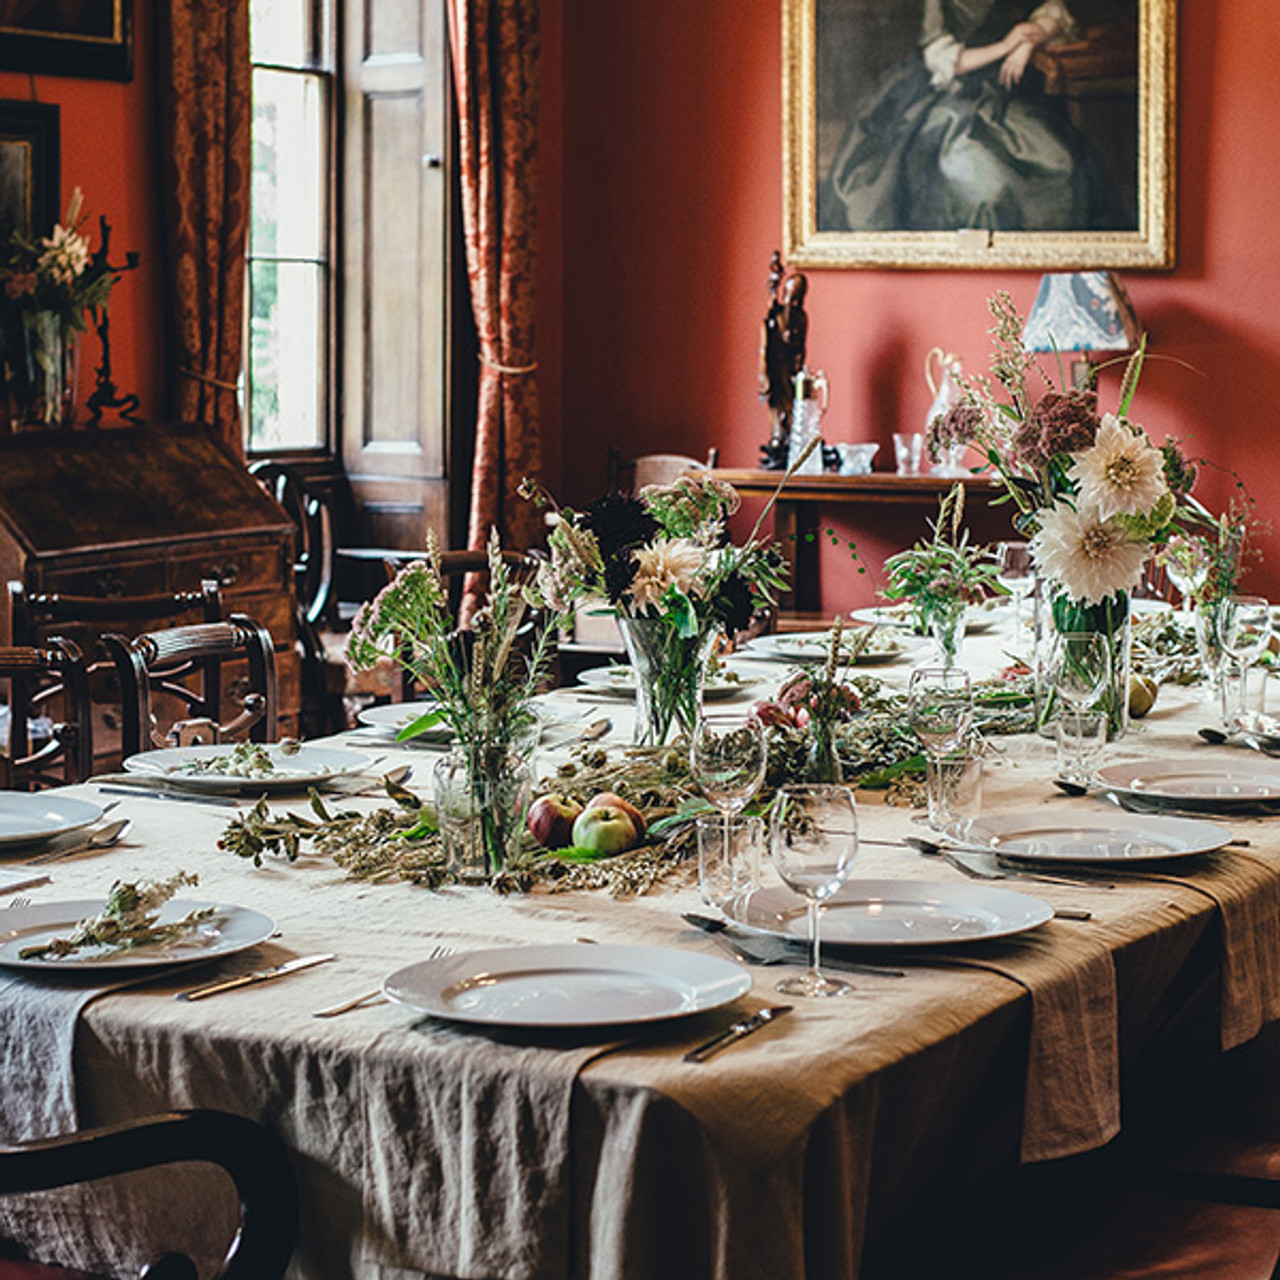 4 Things That Need to Be on Your Holiday Hosting Checklist